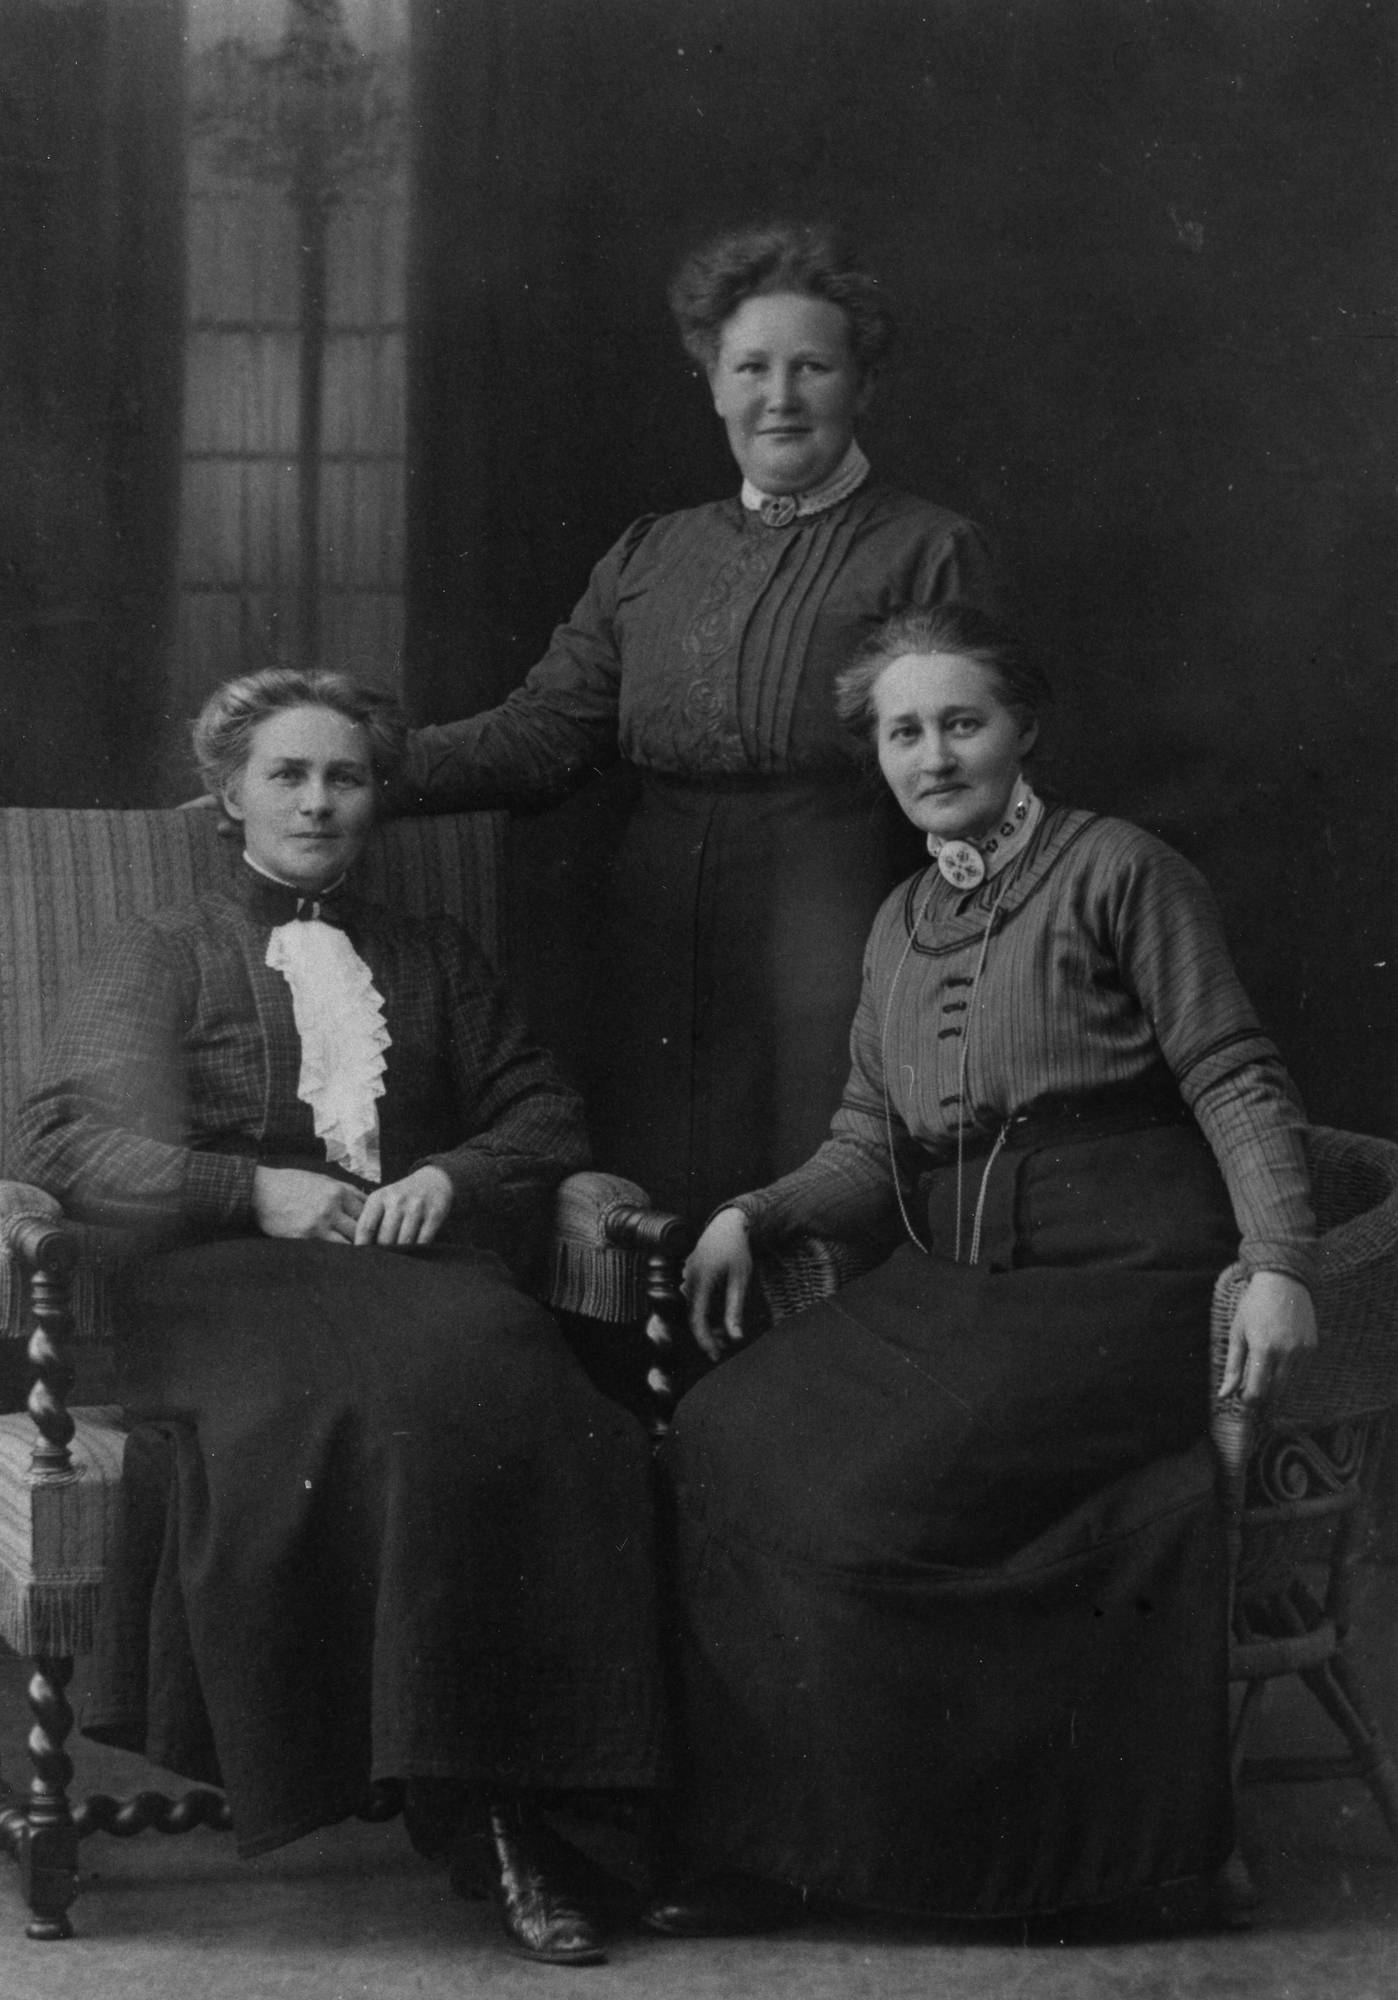 Sigrid Kruse (center) with her sisters Ellen (left) and Ester (right), circa 1900. Photographer unknown (Vrigstads hembygdsförening)